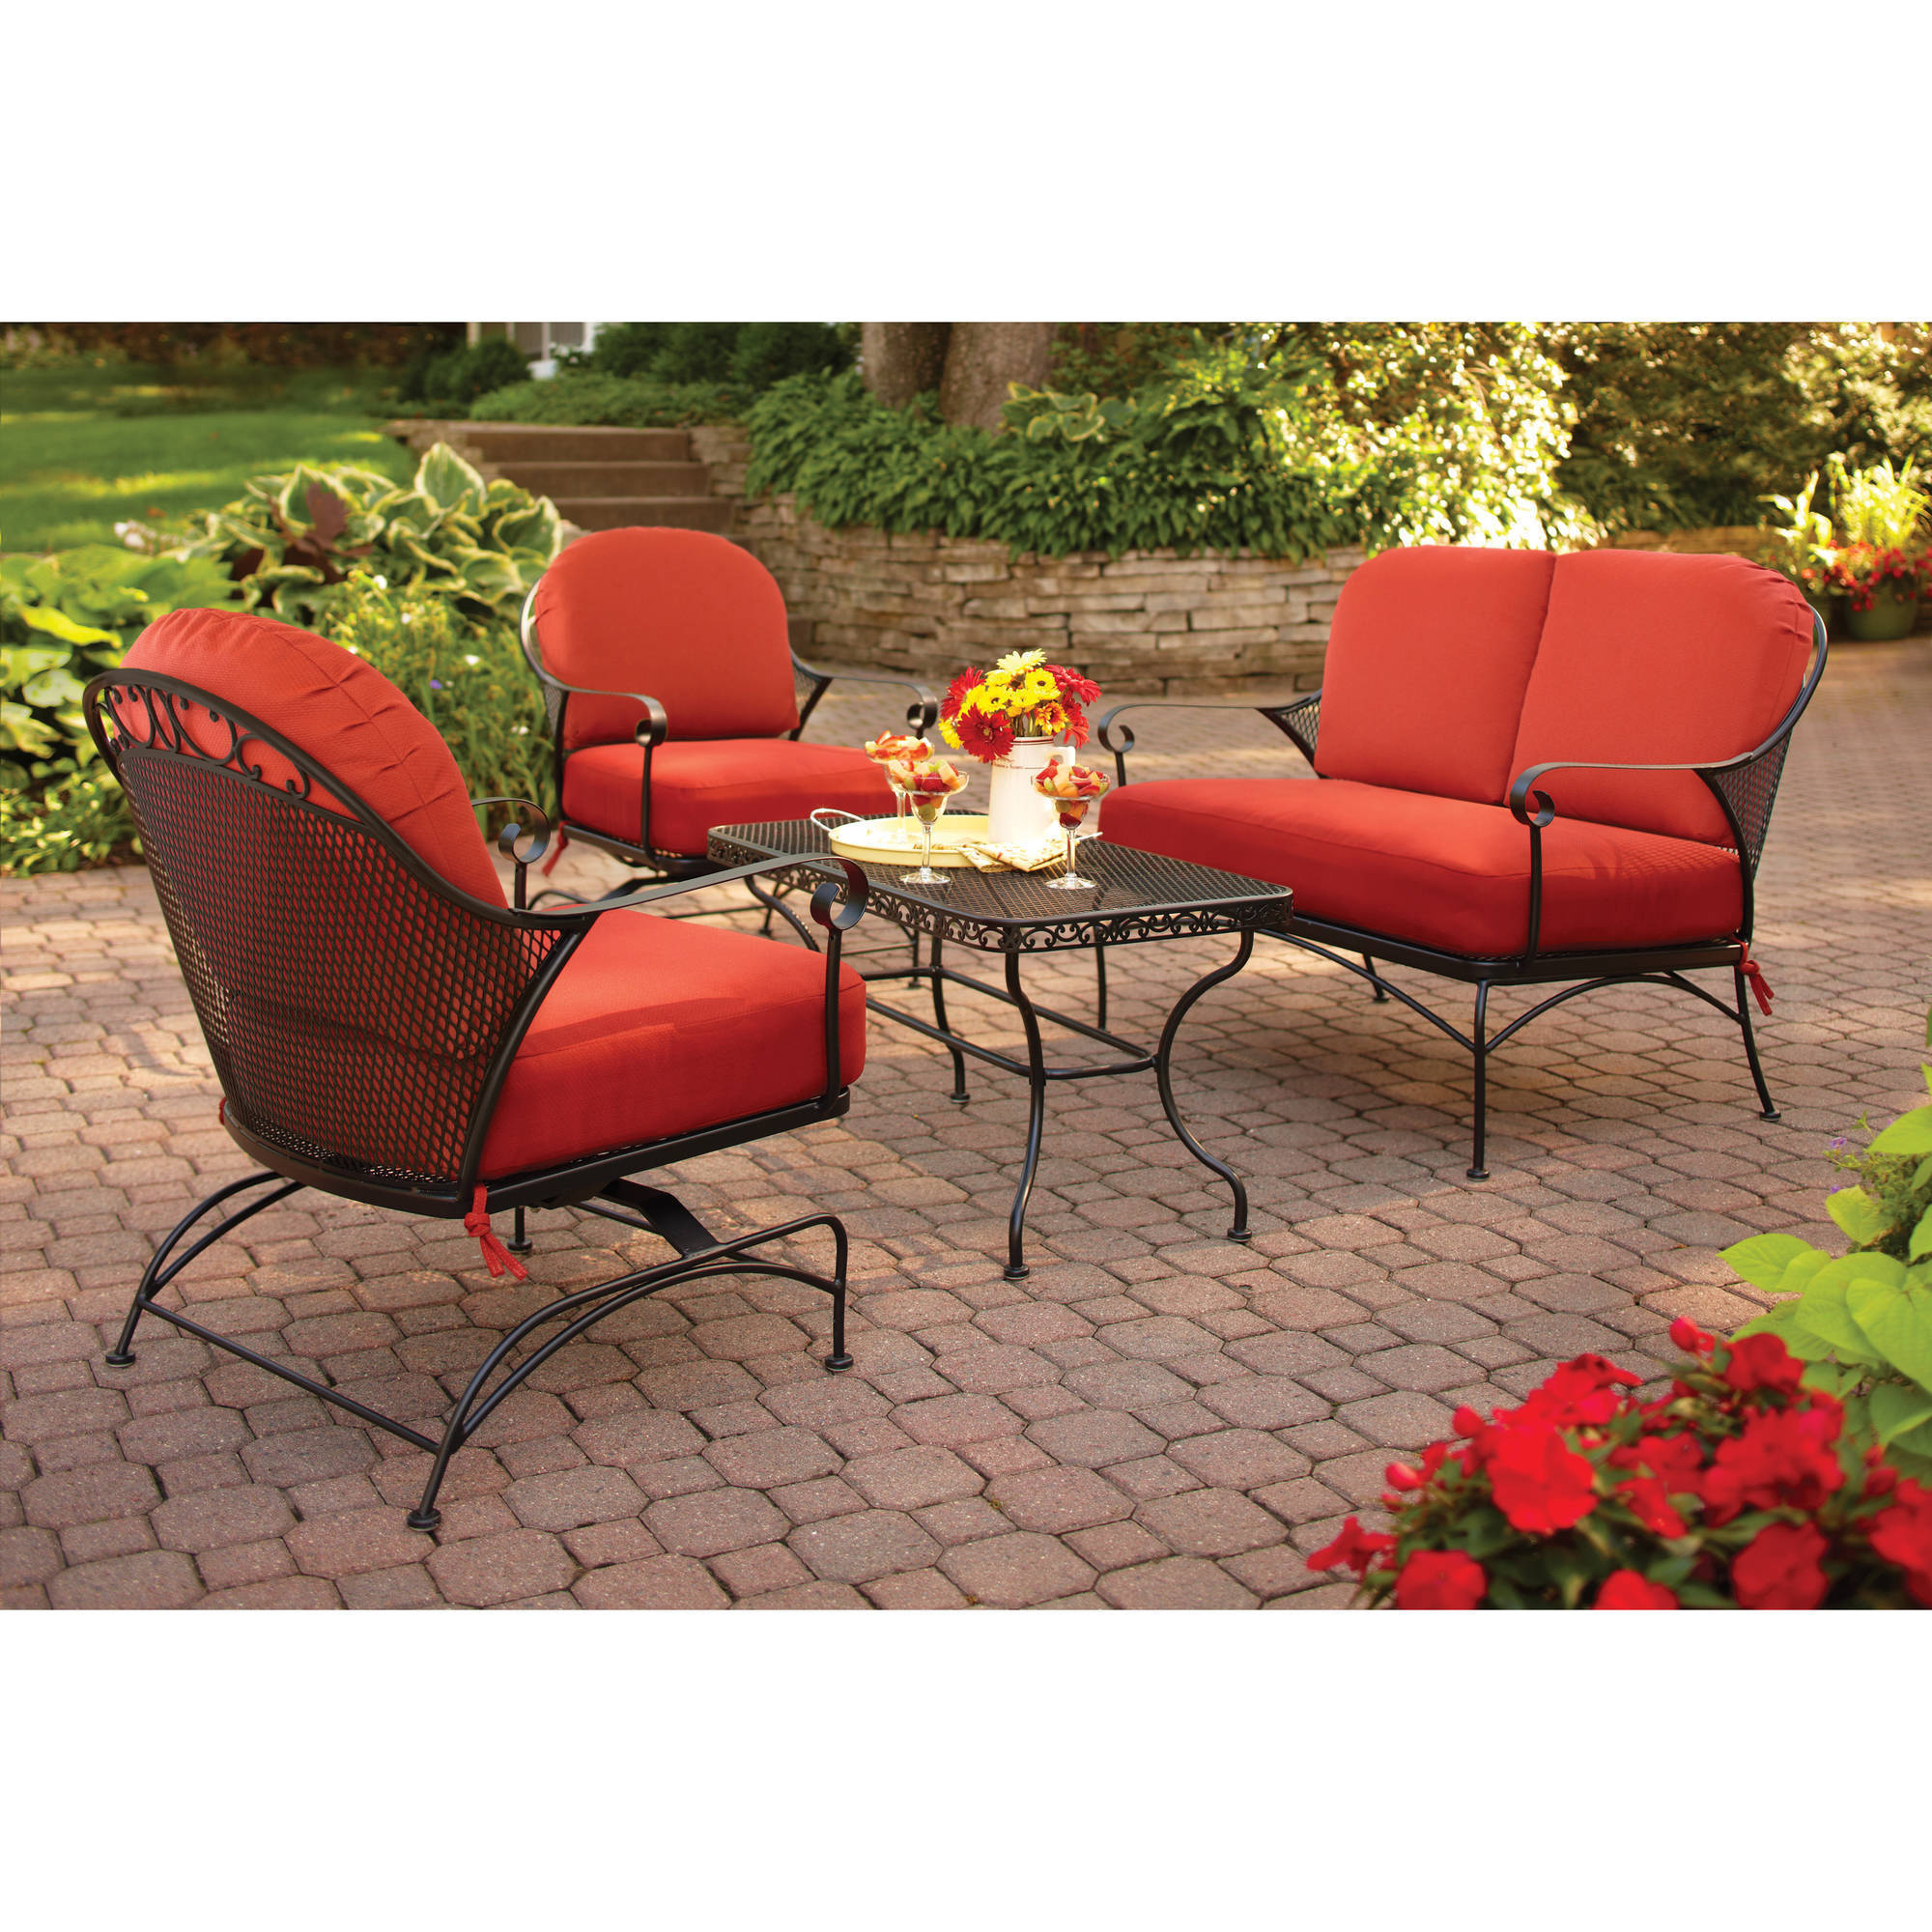 Better Homes and Gardens Clayton Court 4 Piece Patio Conversation Set   Seats 4   Walmart com. Better Homes and Gardens Clayton Court 4 Piece Patio Conversation